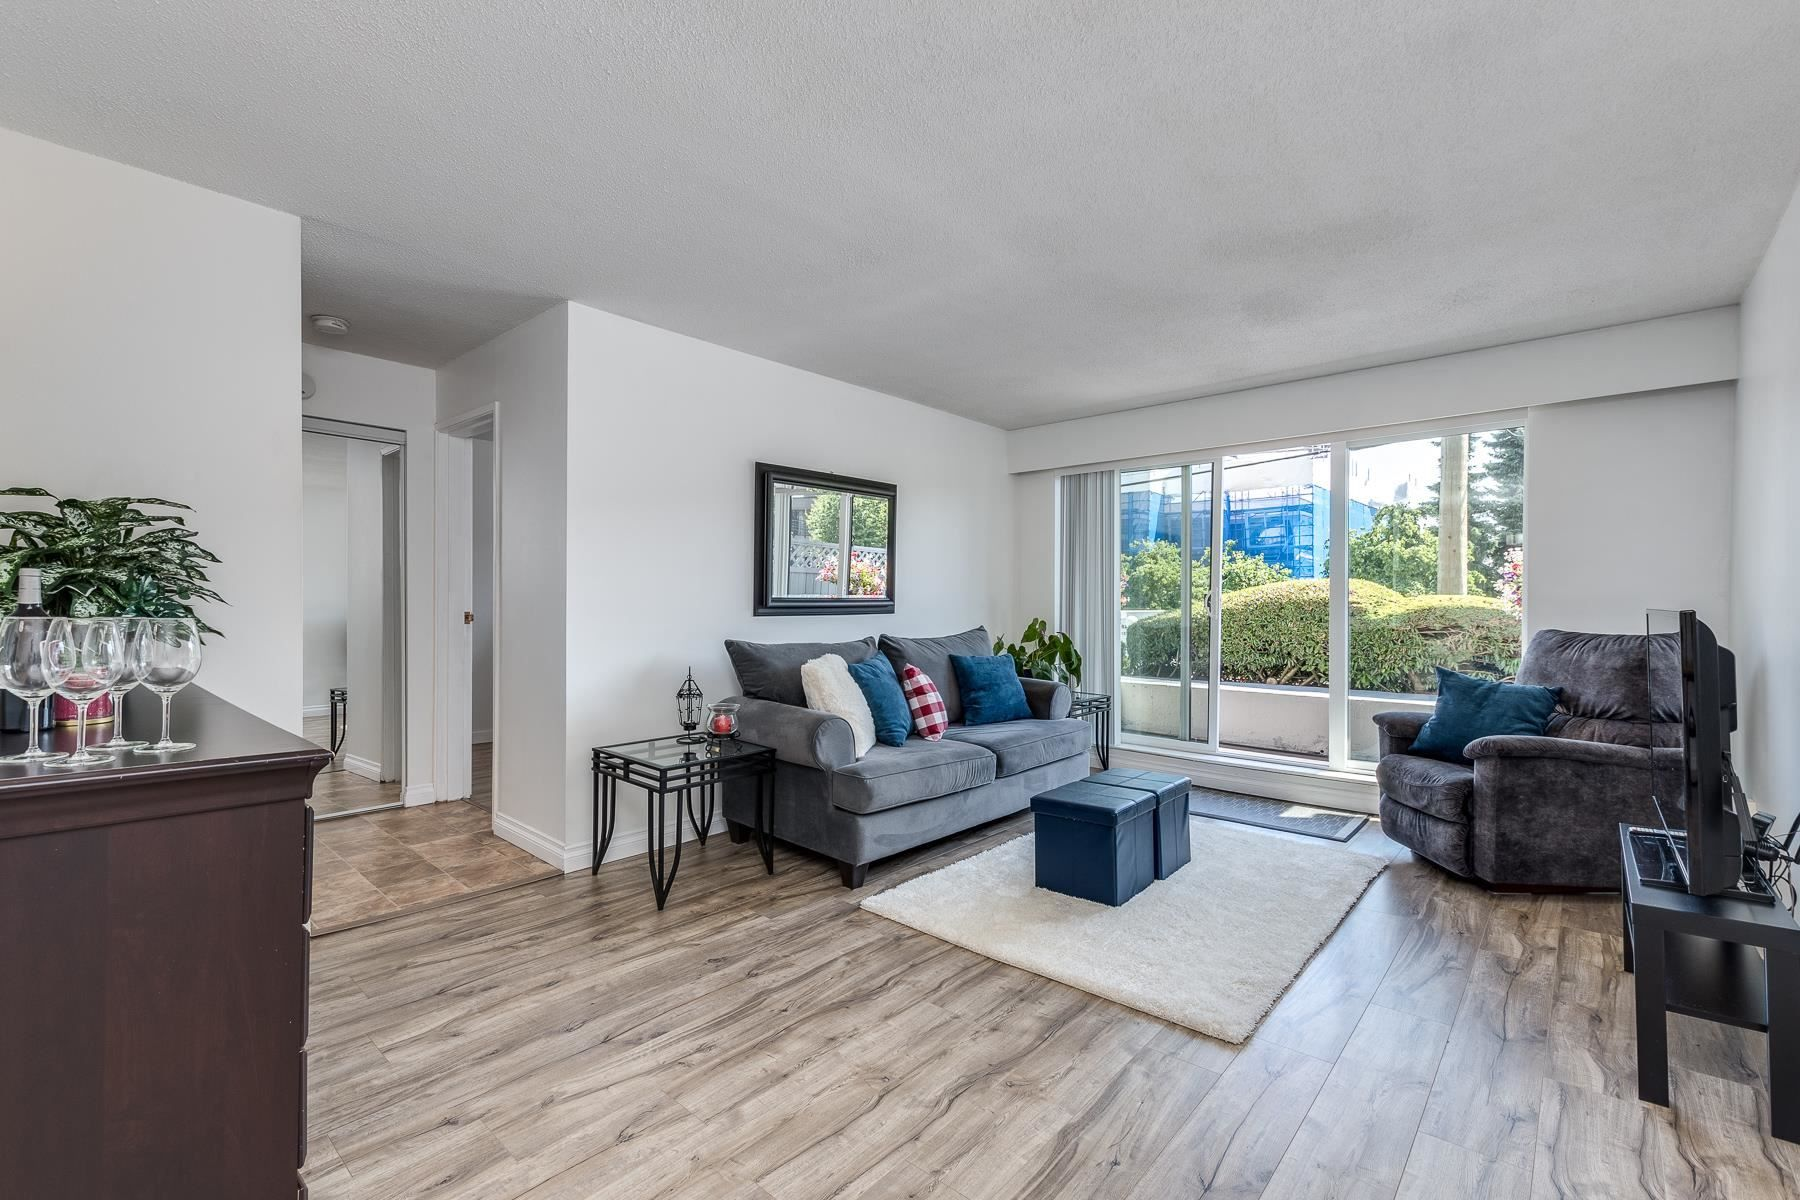 Main Photo: 105 1045 HOWIE AVENUE in Coquitlam: Central Coquitlam Condo for sale : MLS®# R2598868